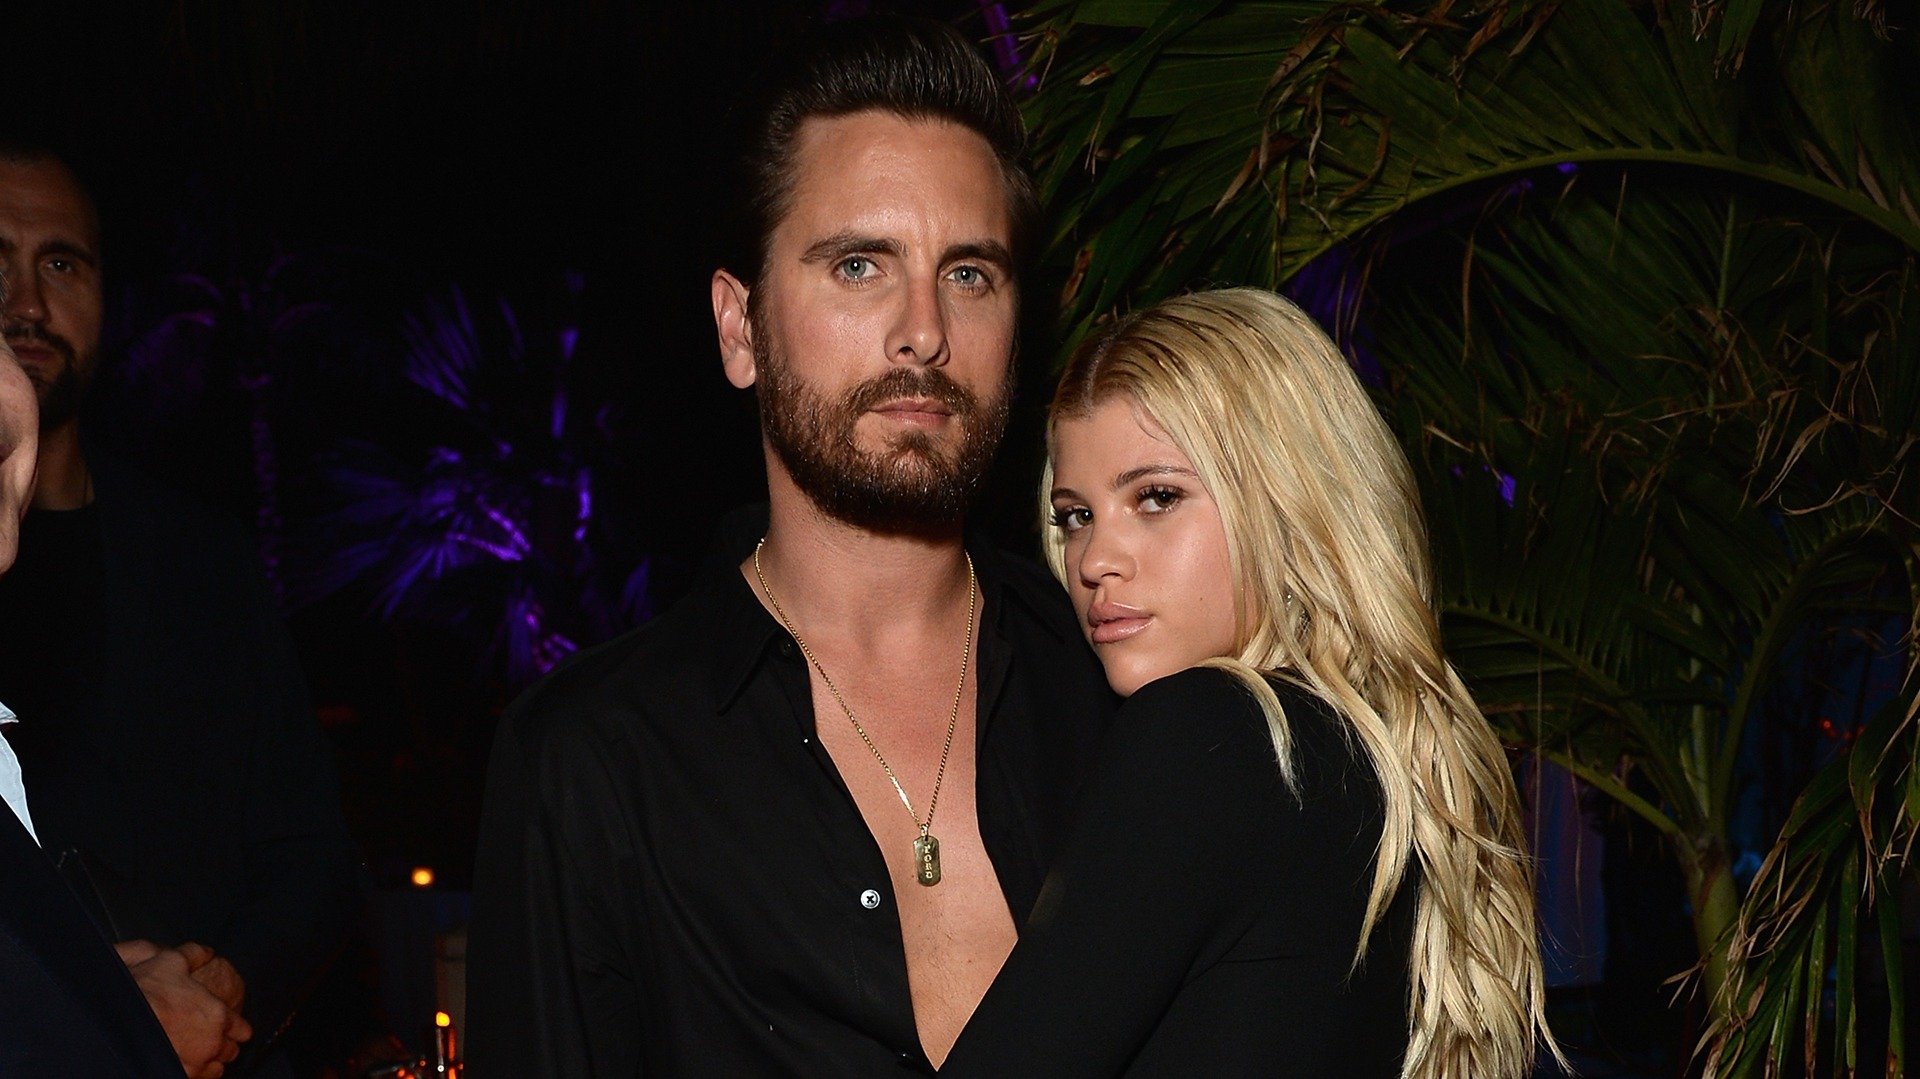 Scott Disick Surprises Sofia Richie With A New Car for Her 21st Birthday